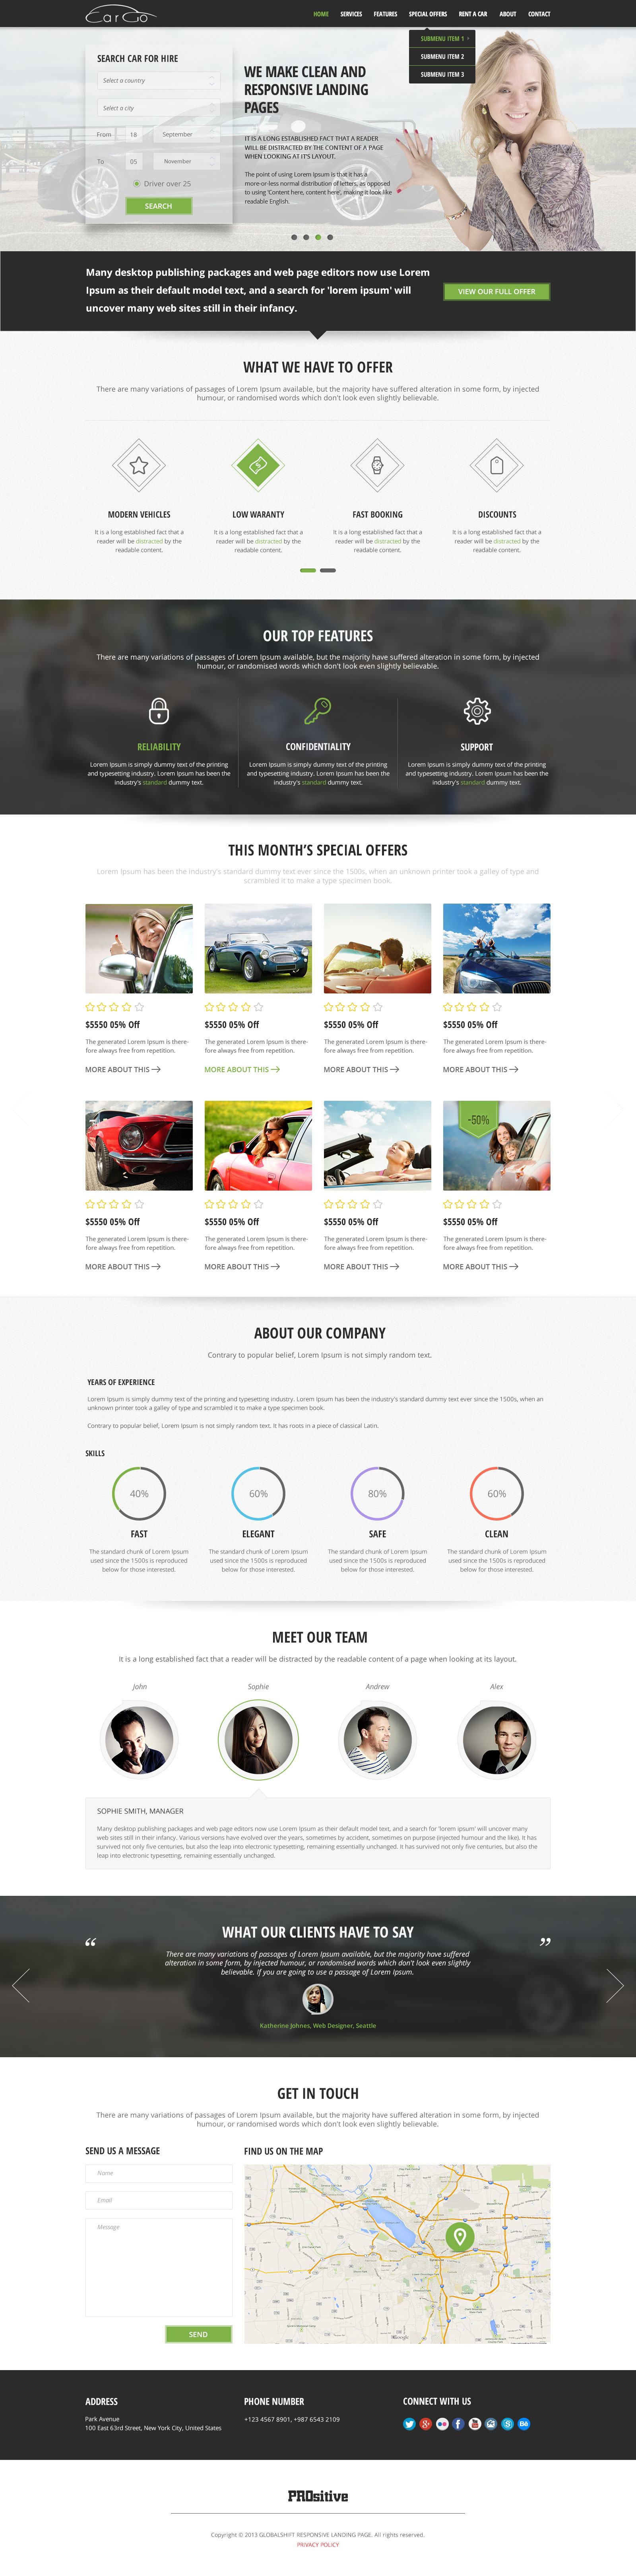 CarGo - Online Booking PSD Template - Desktop - Home Page